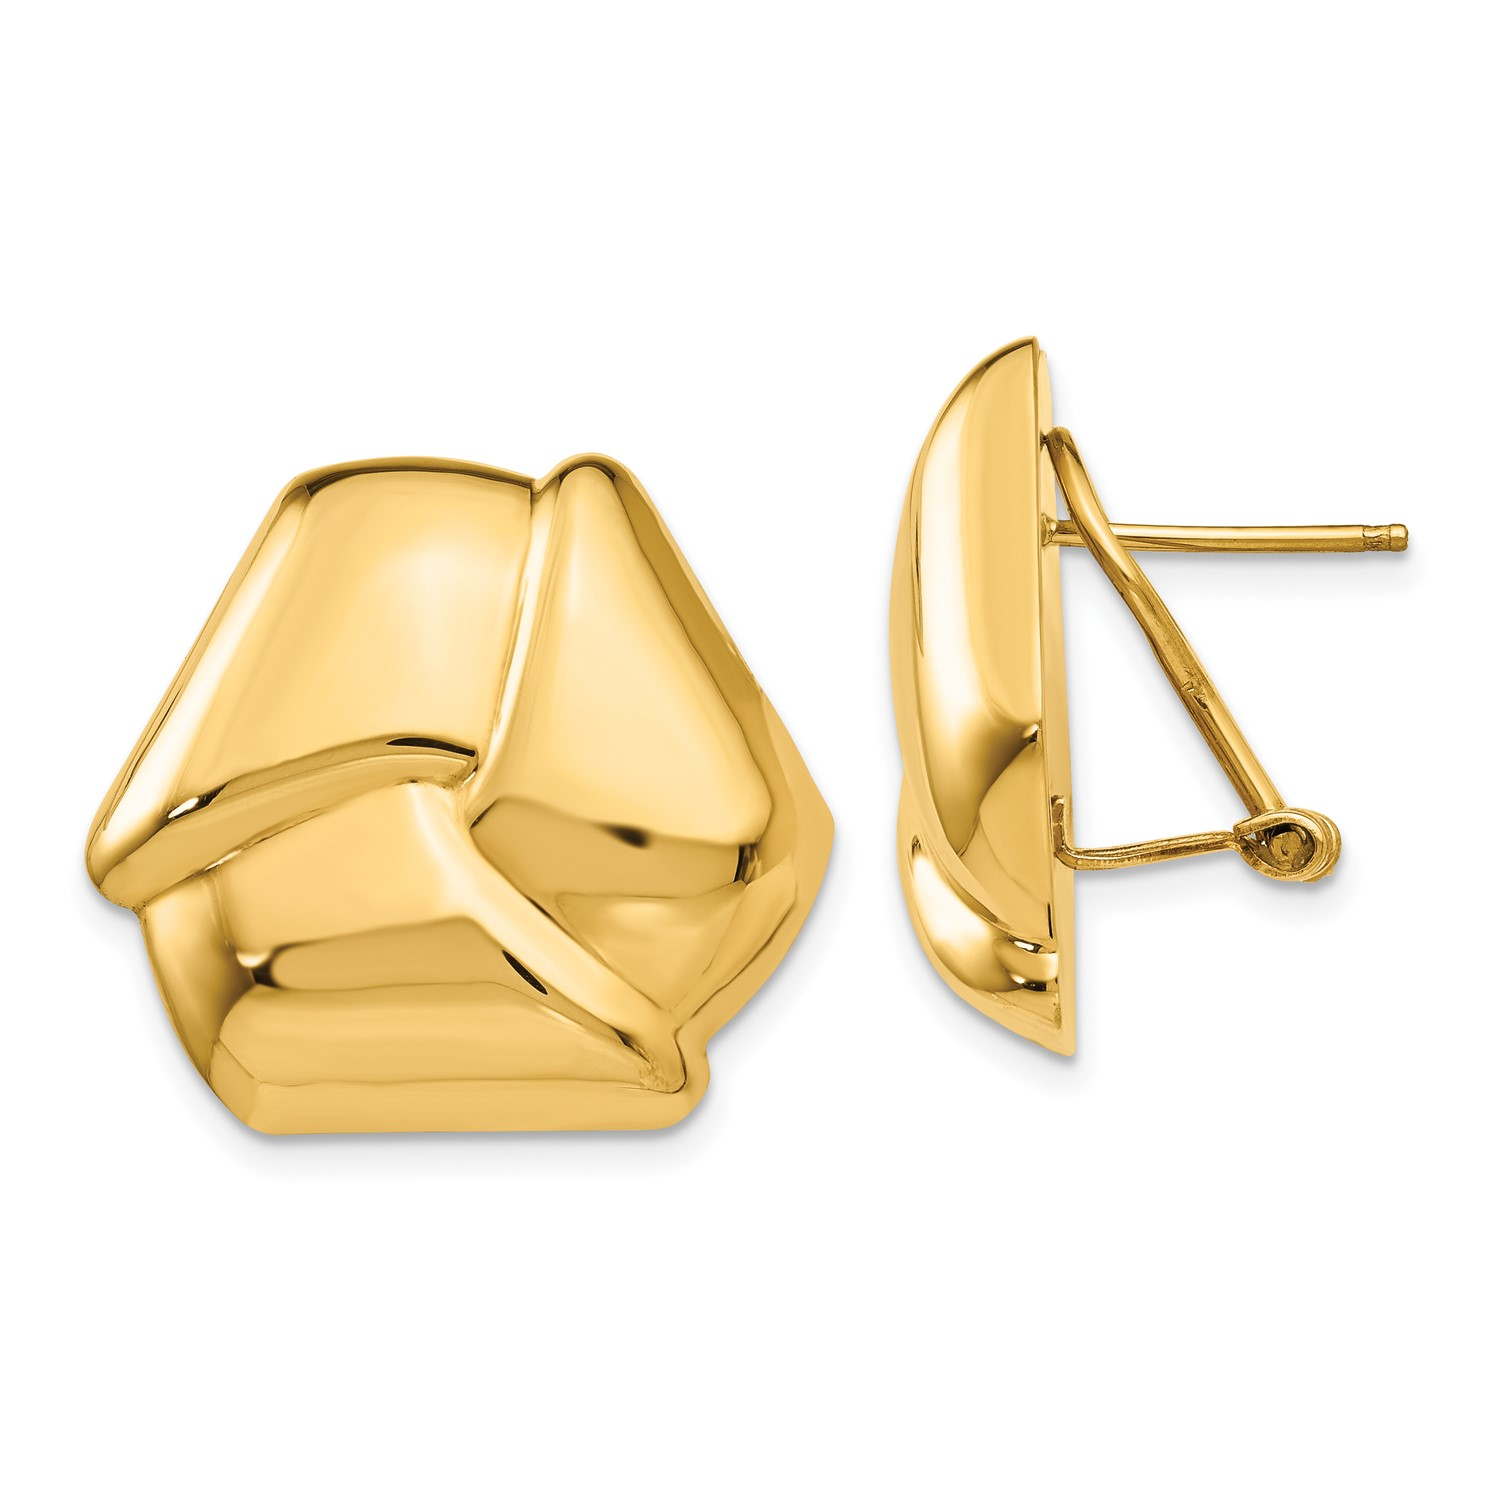 be035c9b3 14k Yellow Gold Polished Knot Omega Back Post Earrings (1IN x 1IN ...